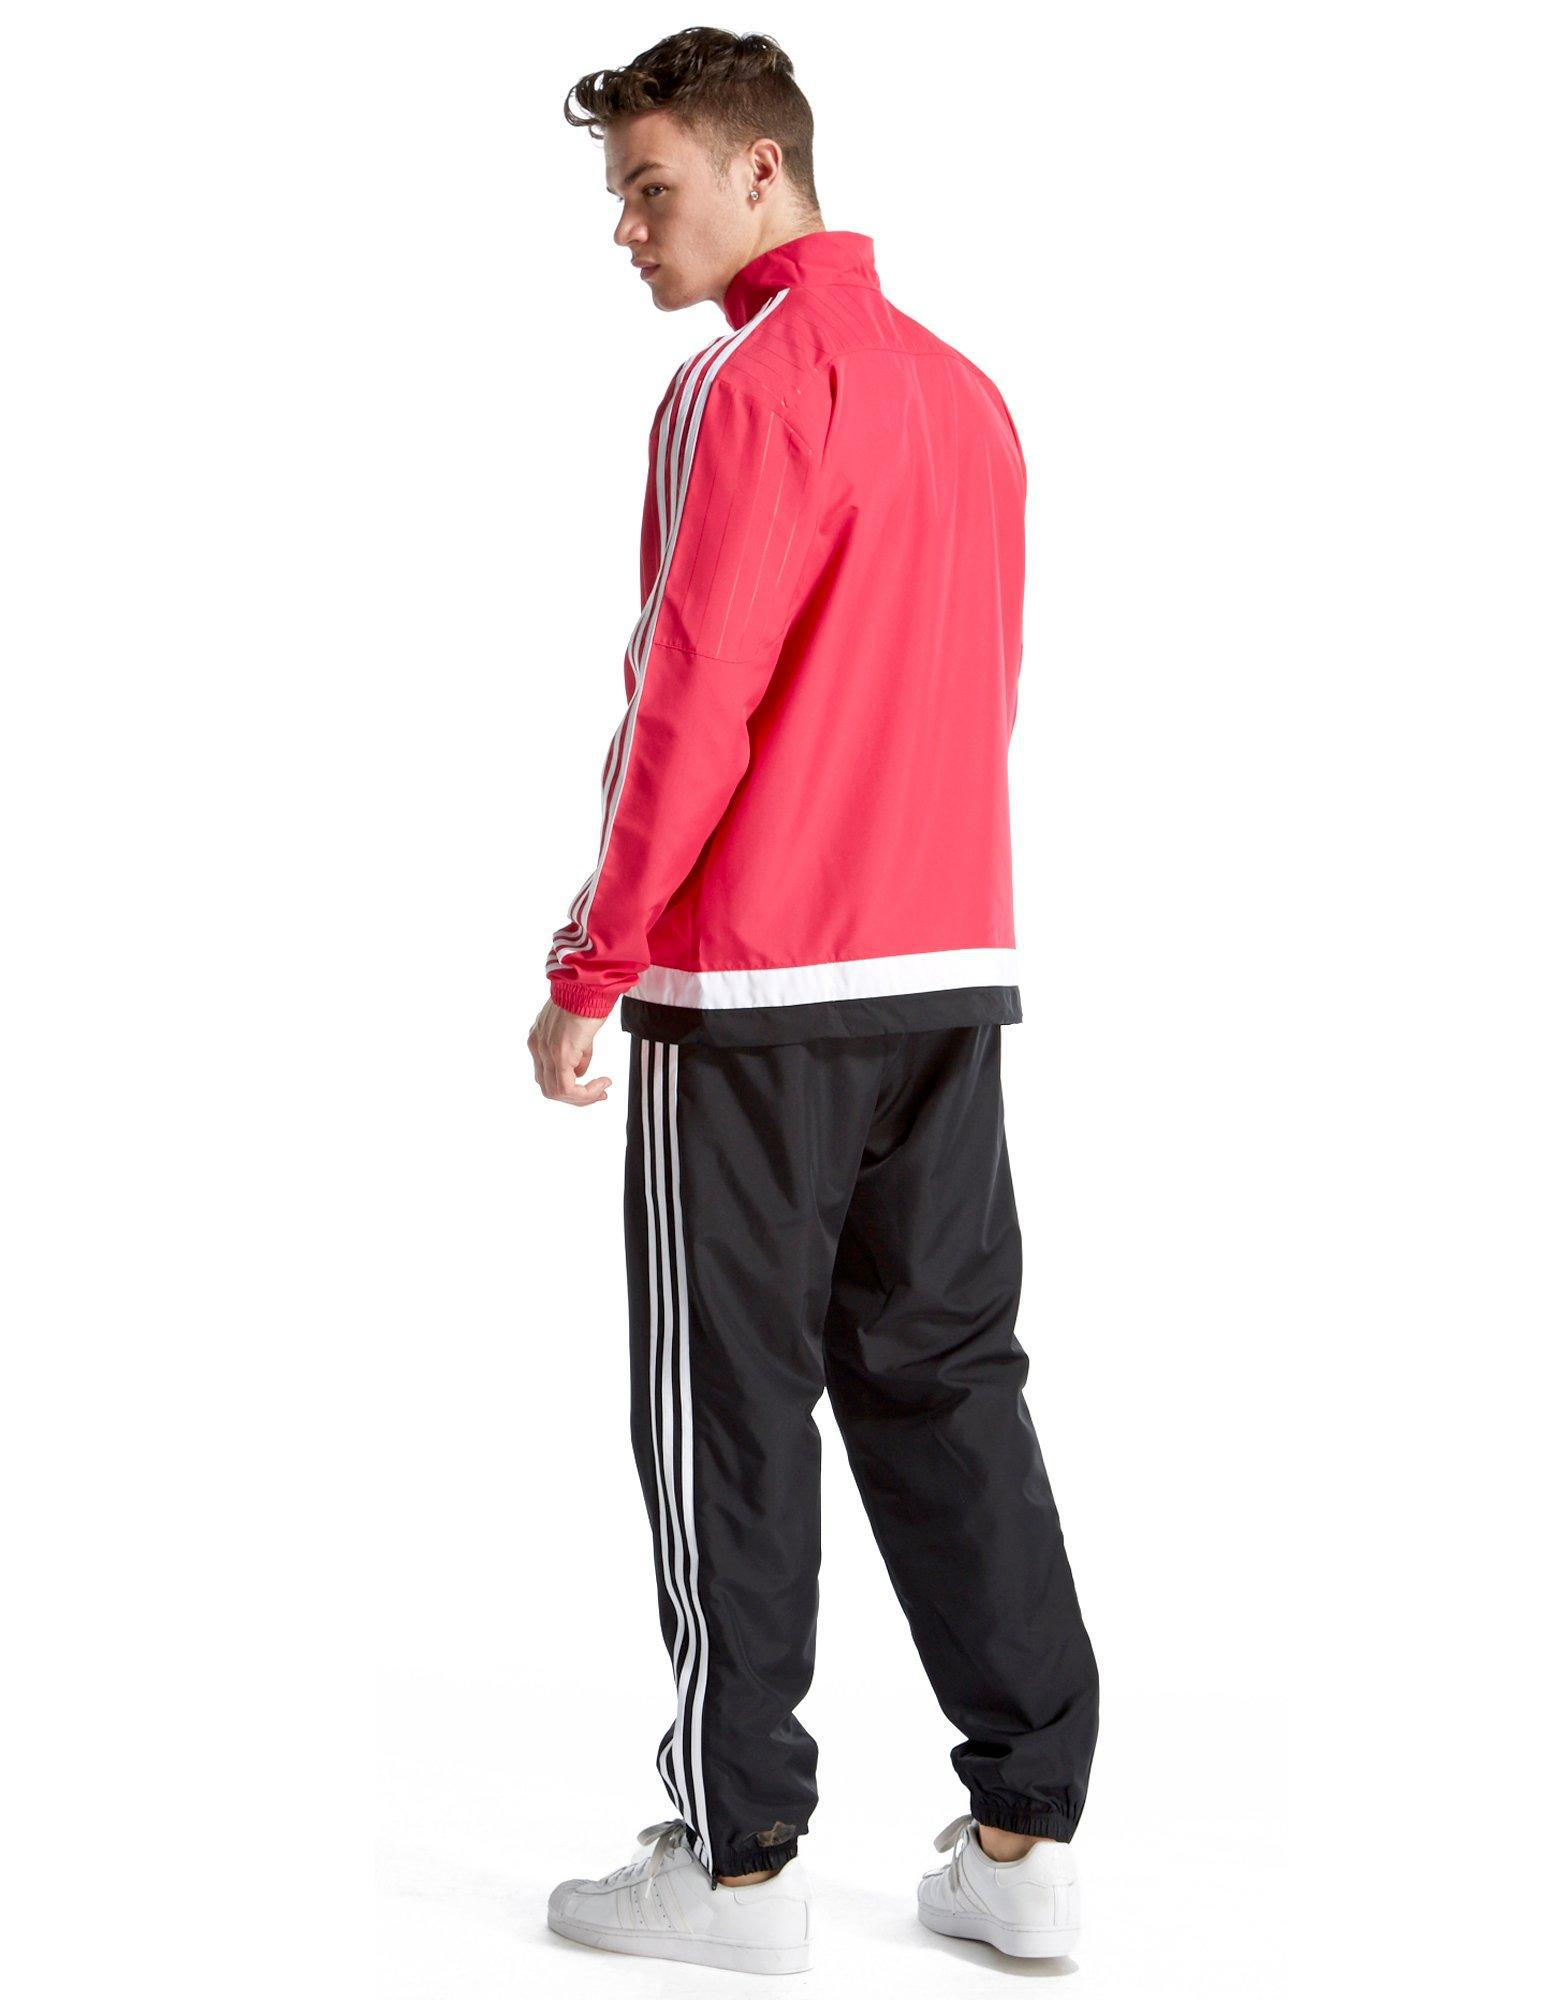 adidas Originals Synthetic Juventus 2015 Pre Match Tracksuit in Pink/Black (Pink) for Men